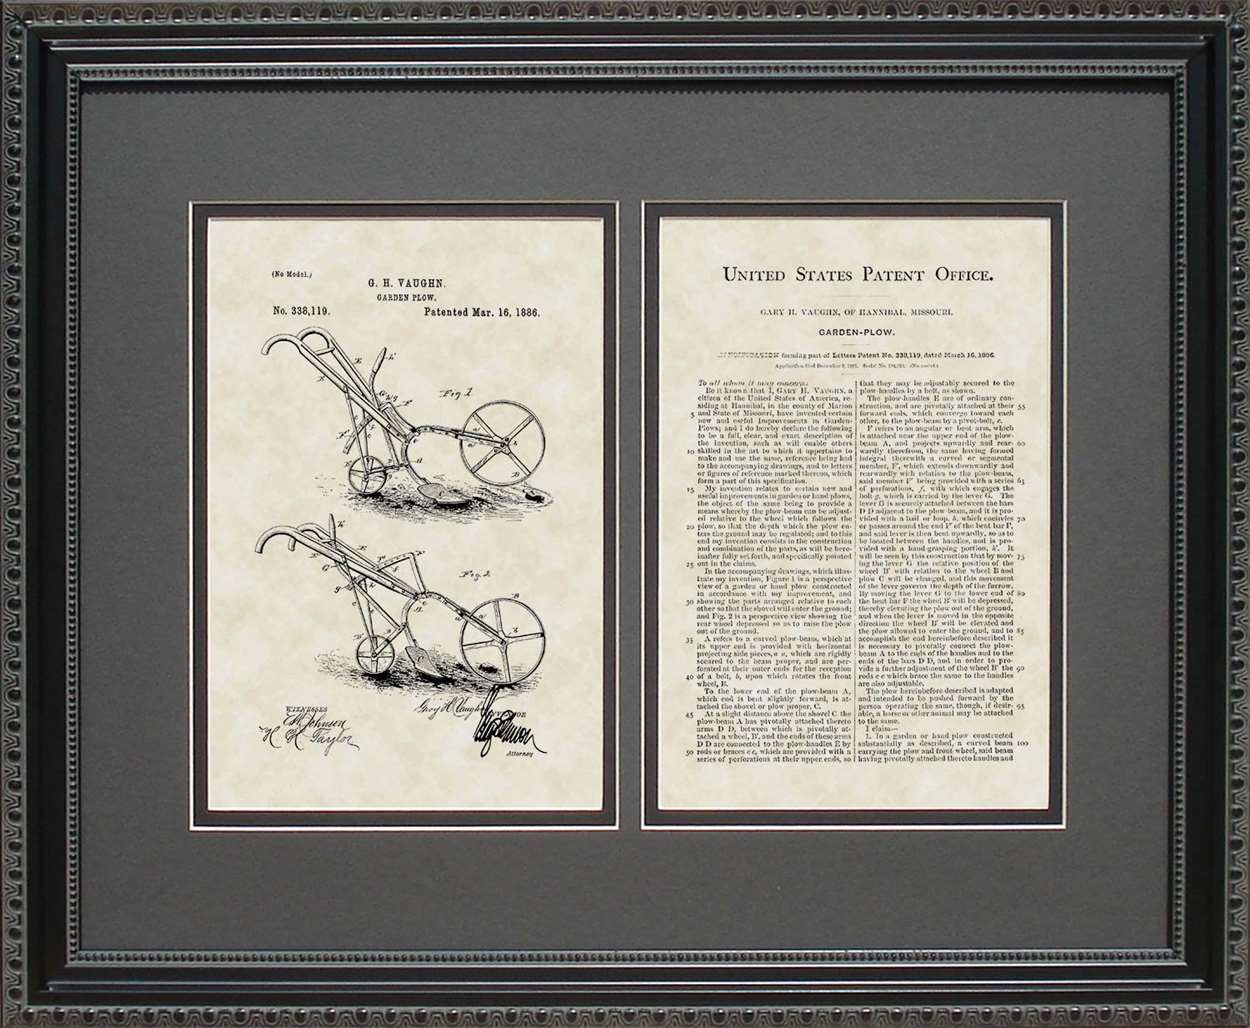 Garden Plow Patent, Art & Copy, Vaughn, 1886, 16x20